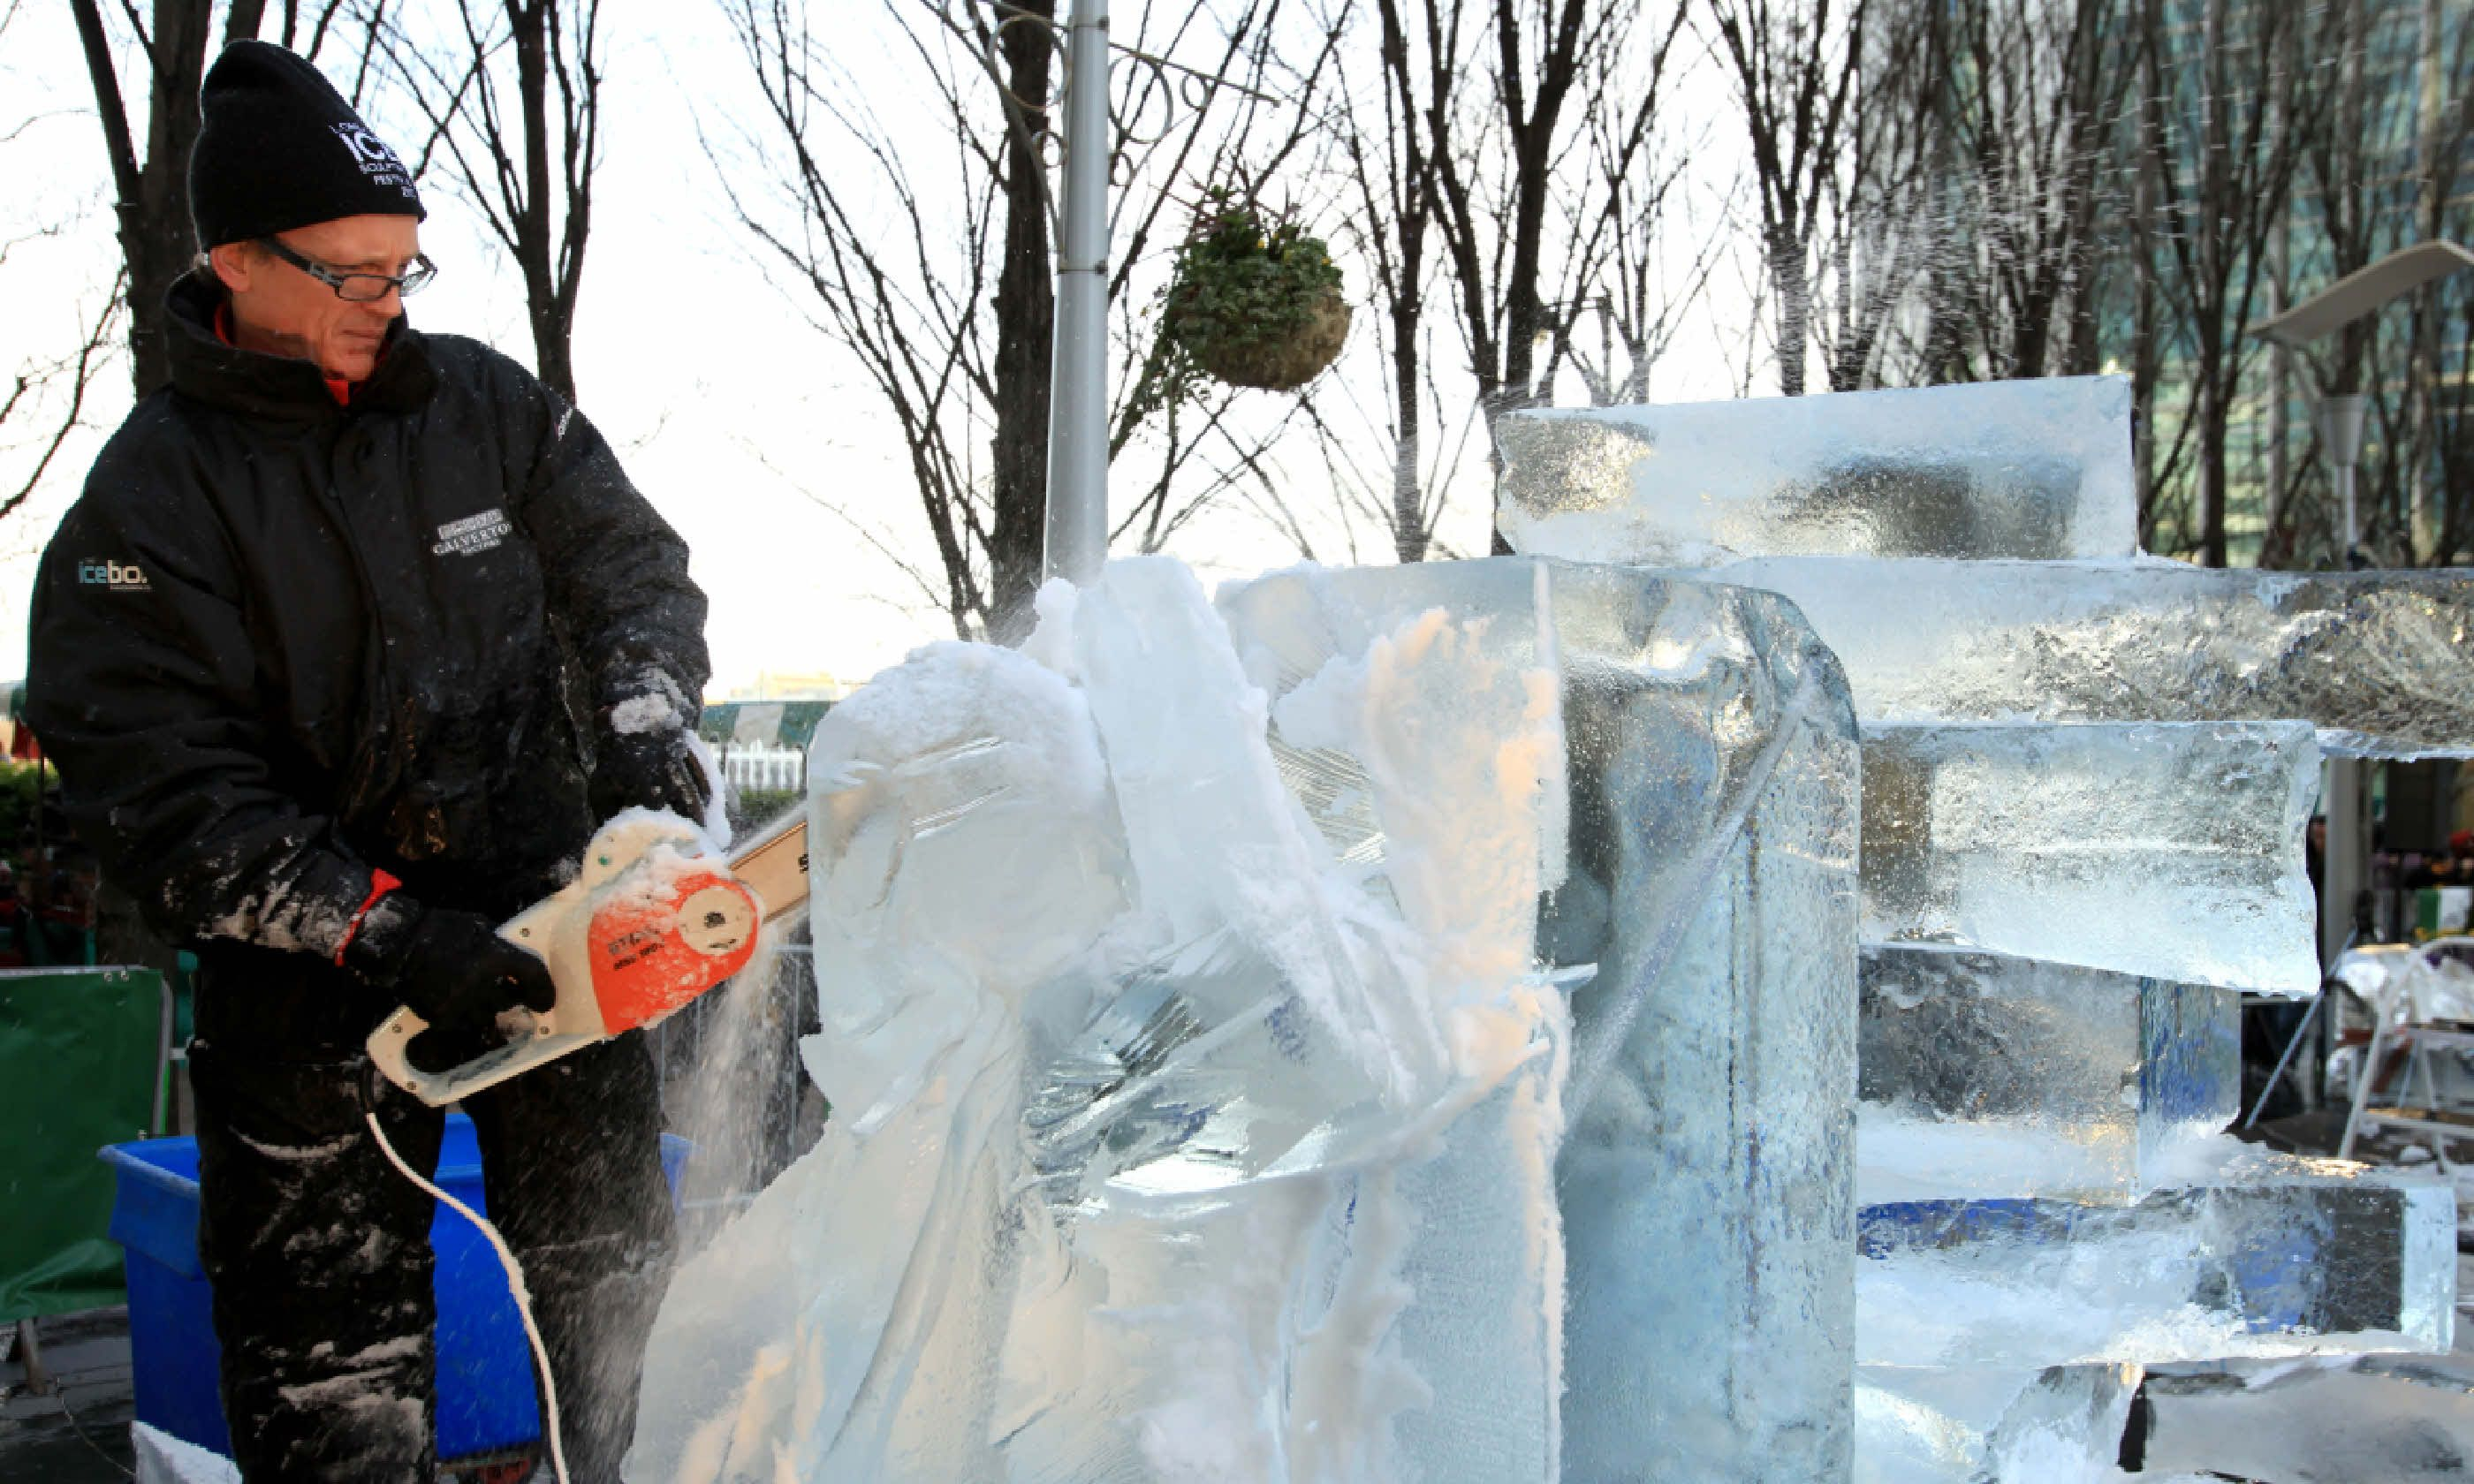 London Ice Sculpting Festival (Shutterstock)